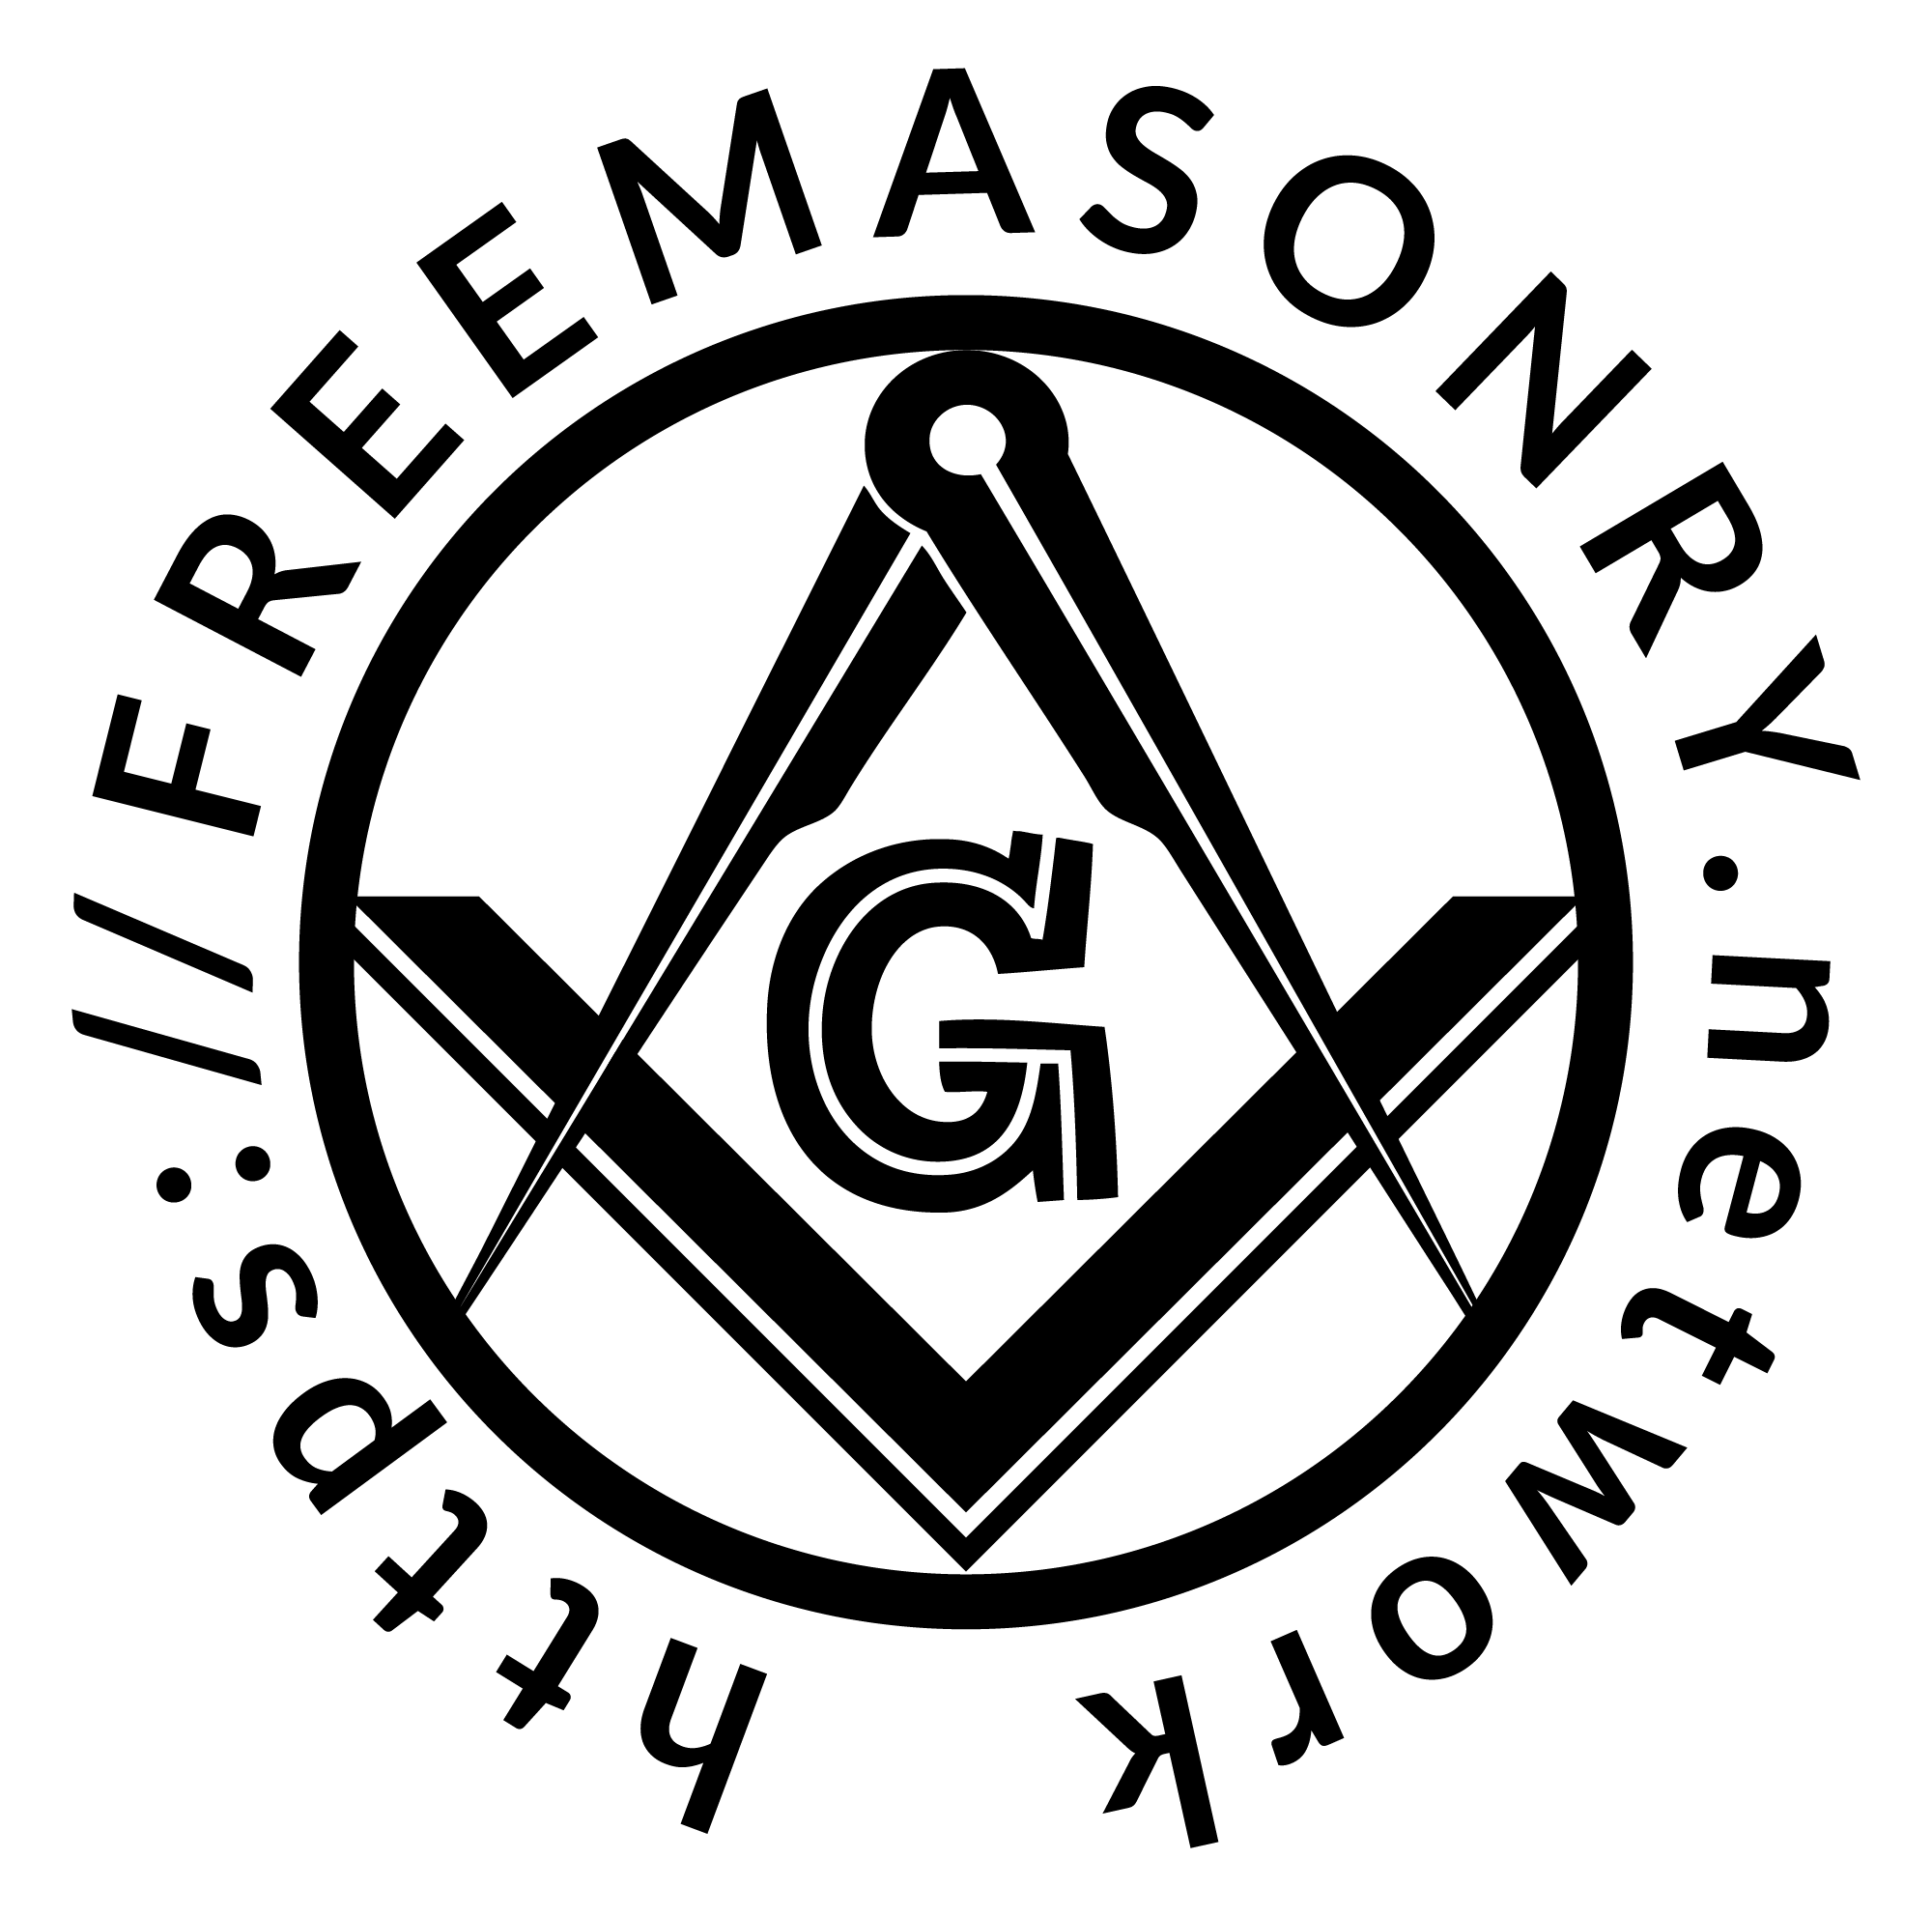 MASONIC LIGHTS